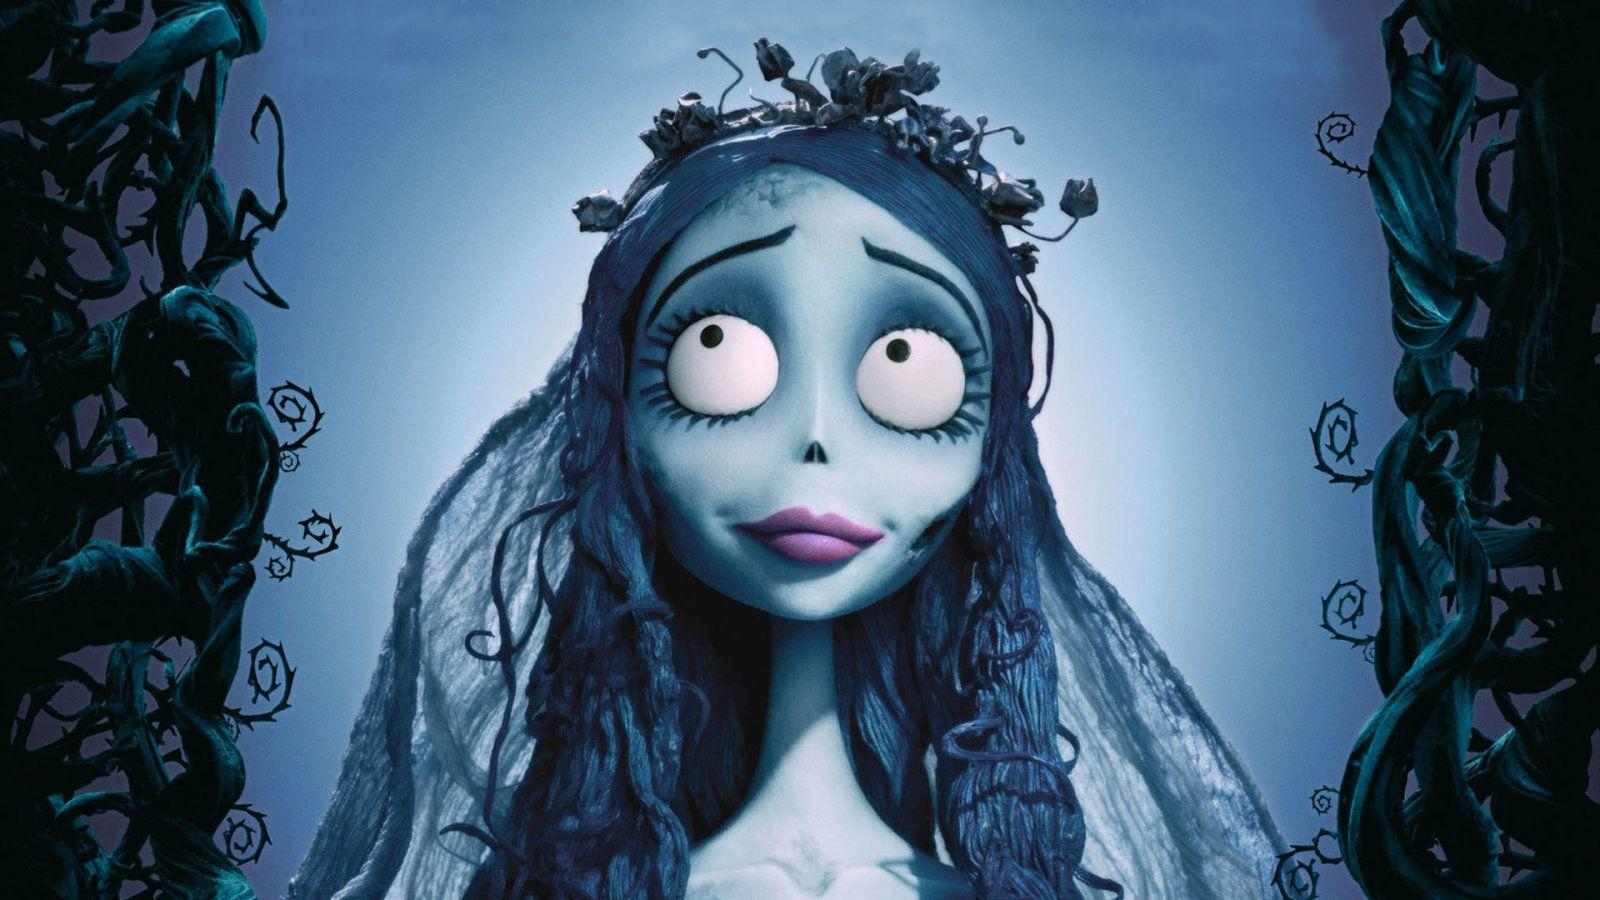 corpse bride movie wallpapers - photo #15